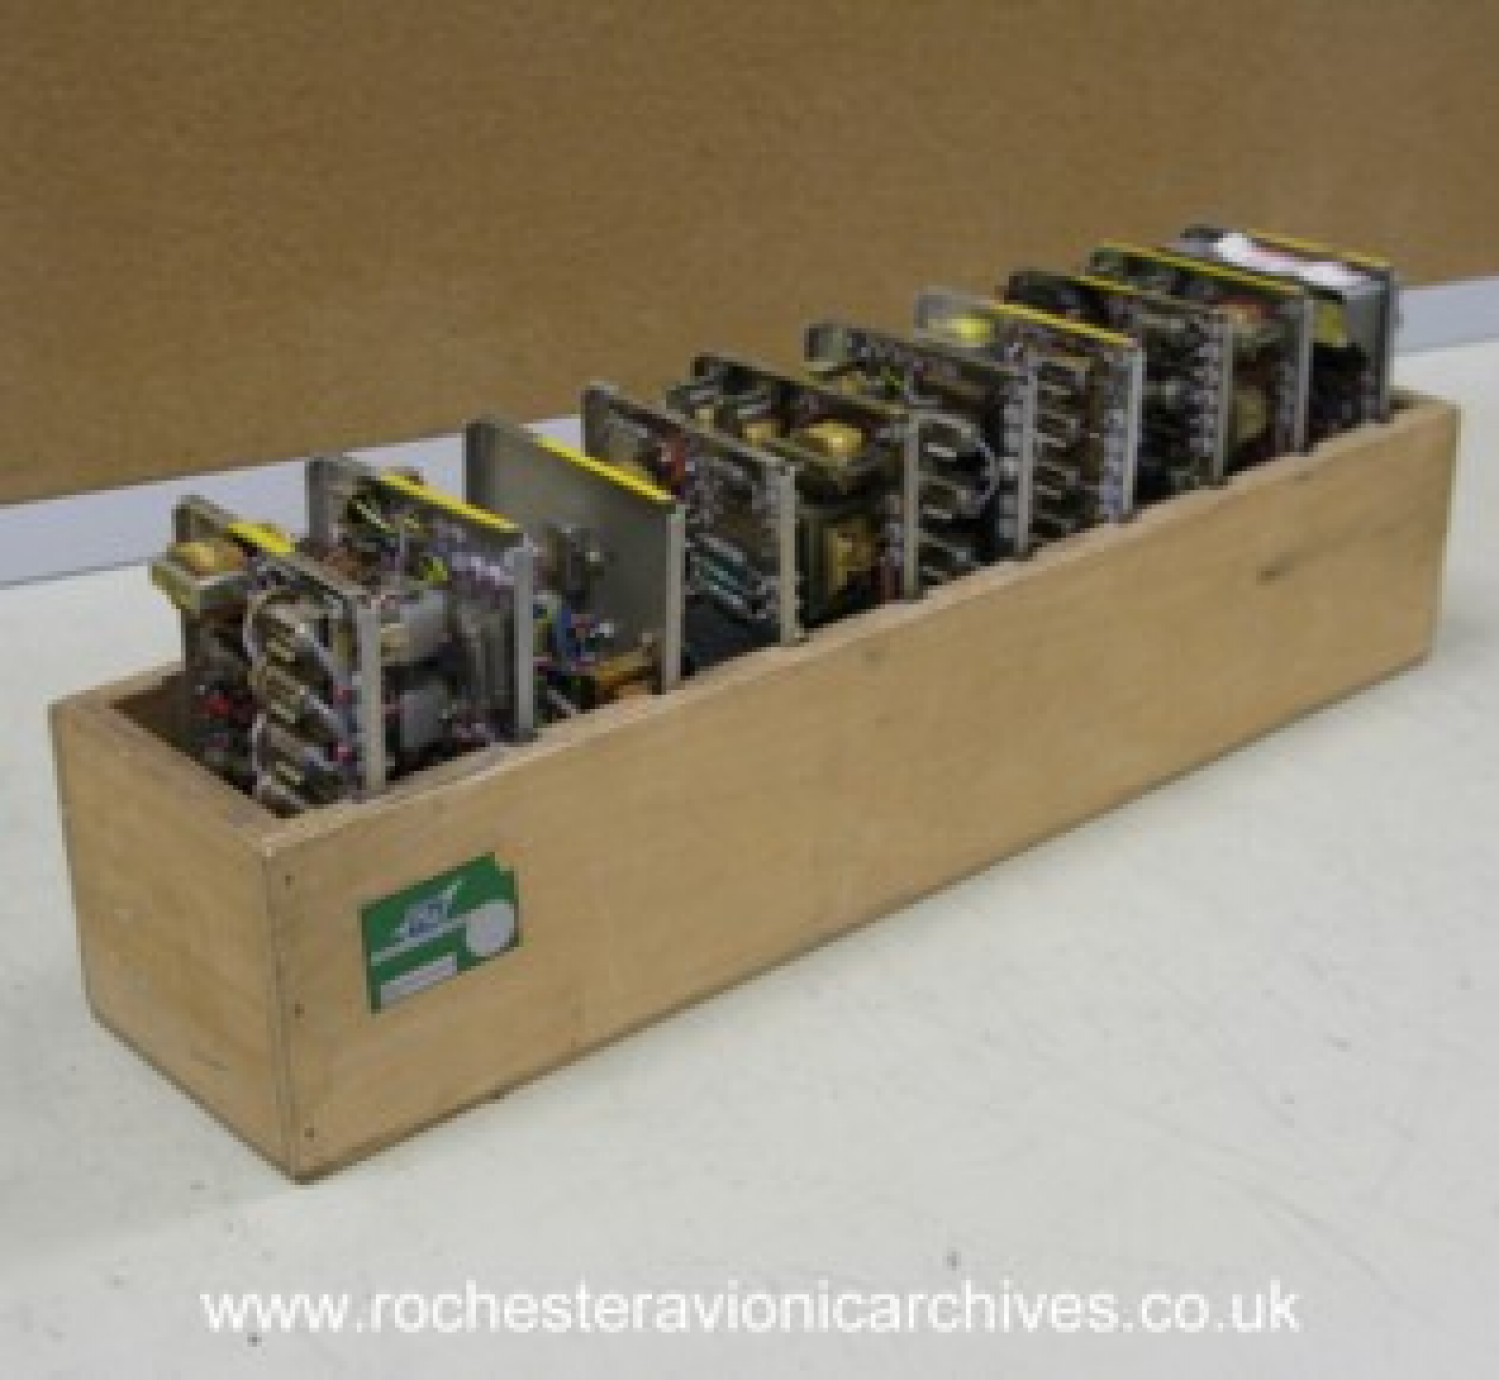 Box of VC10 Circuit Modules